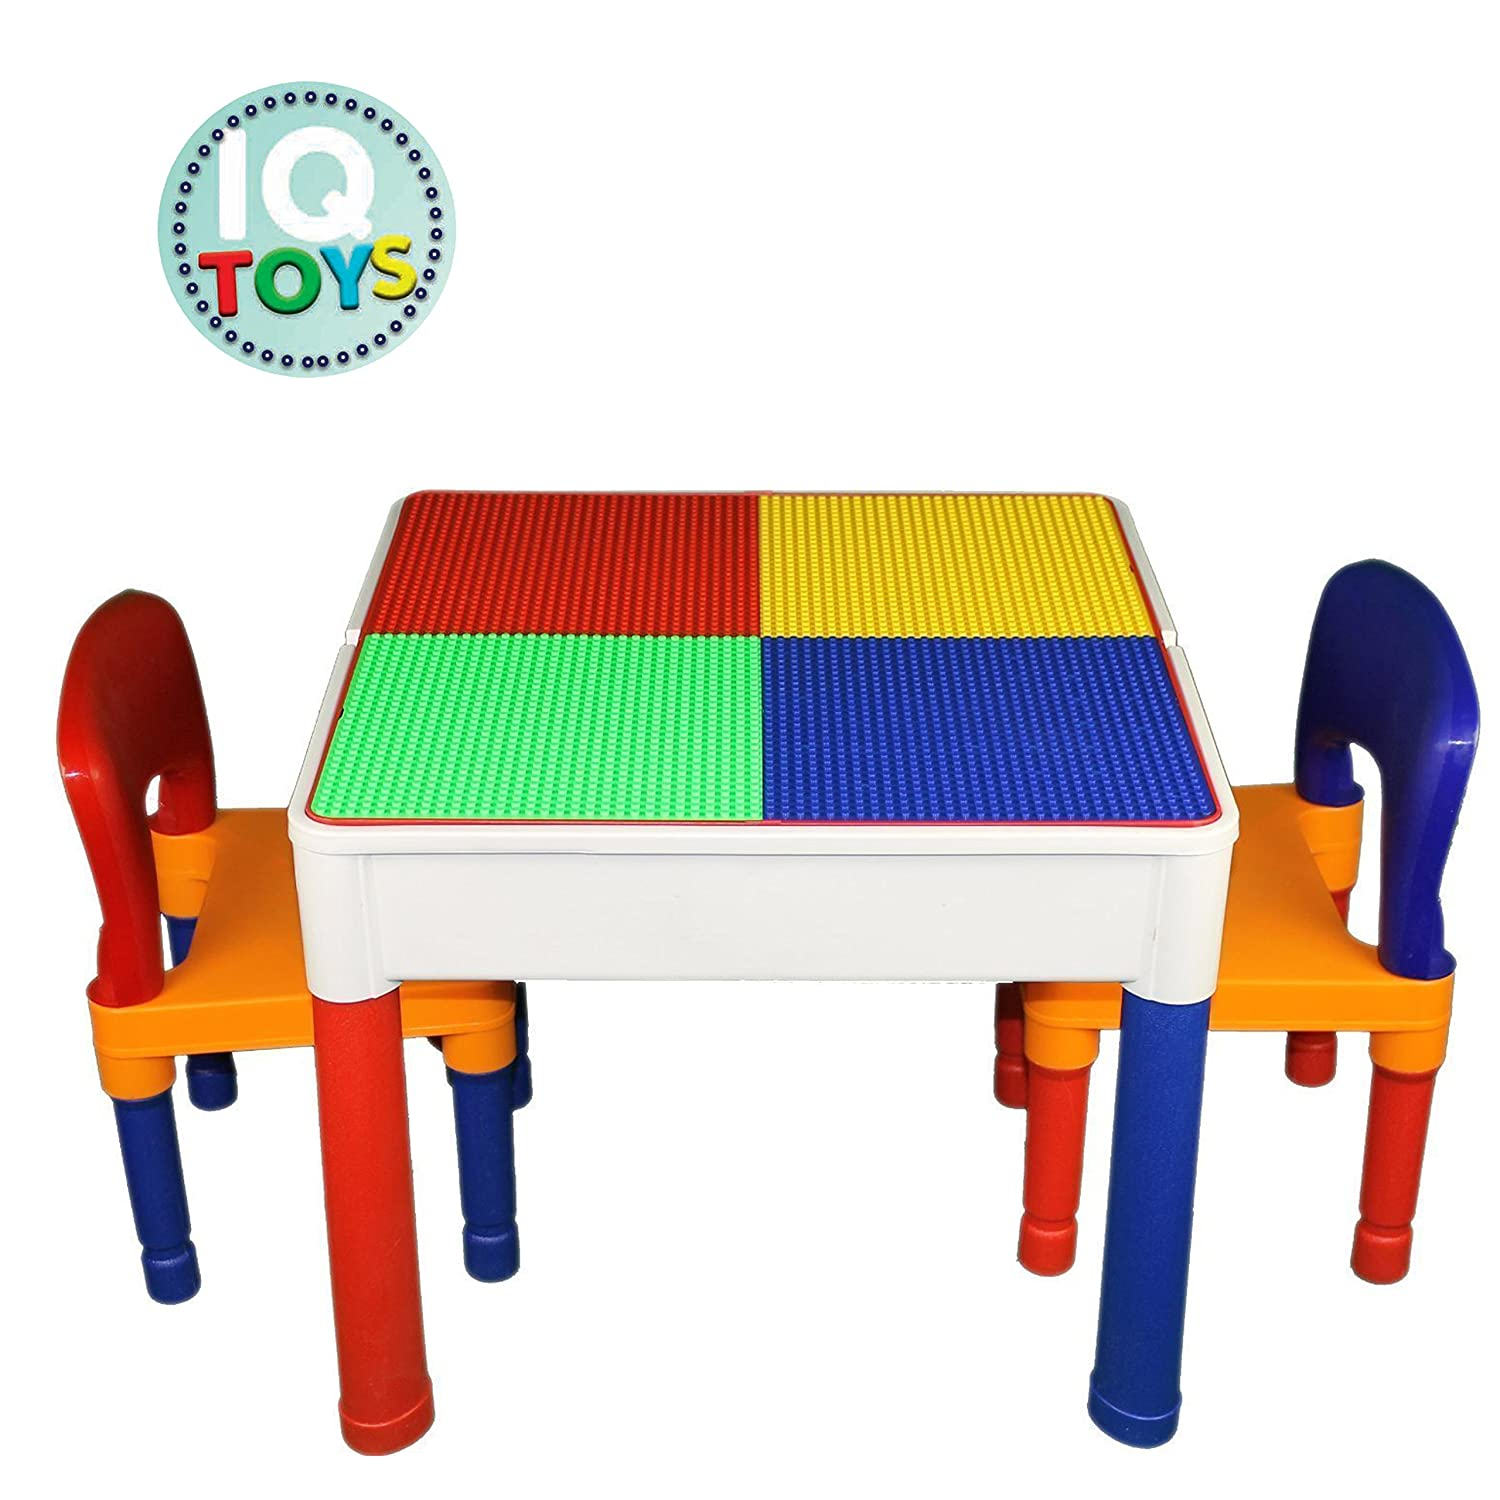 Amazon Kids Table & Chairs 3 in 1 Lego & Duplo patible